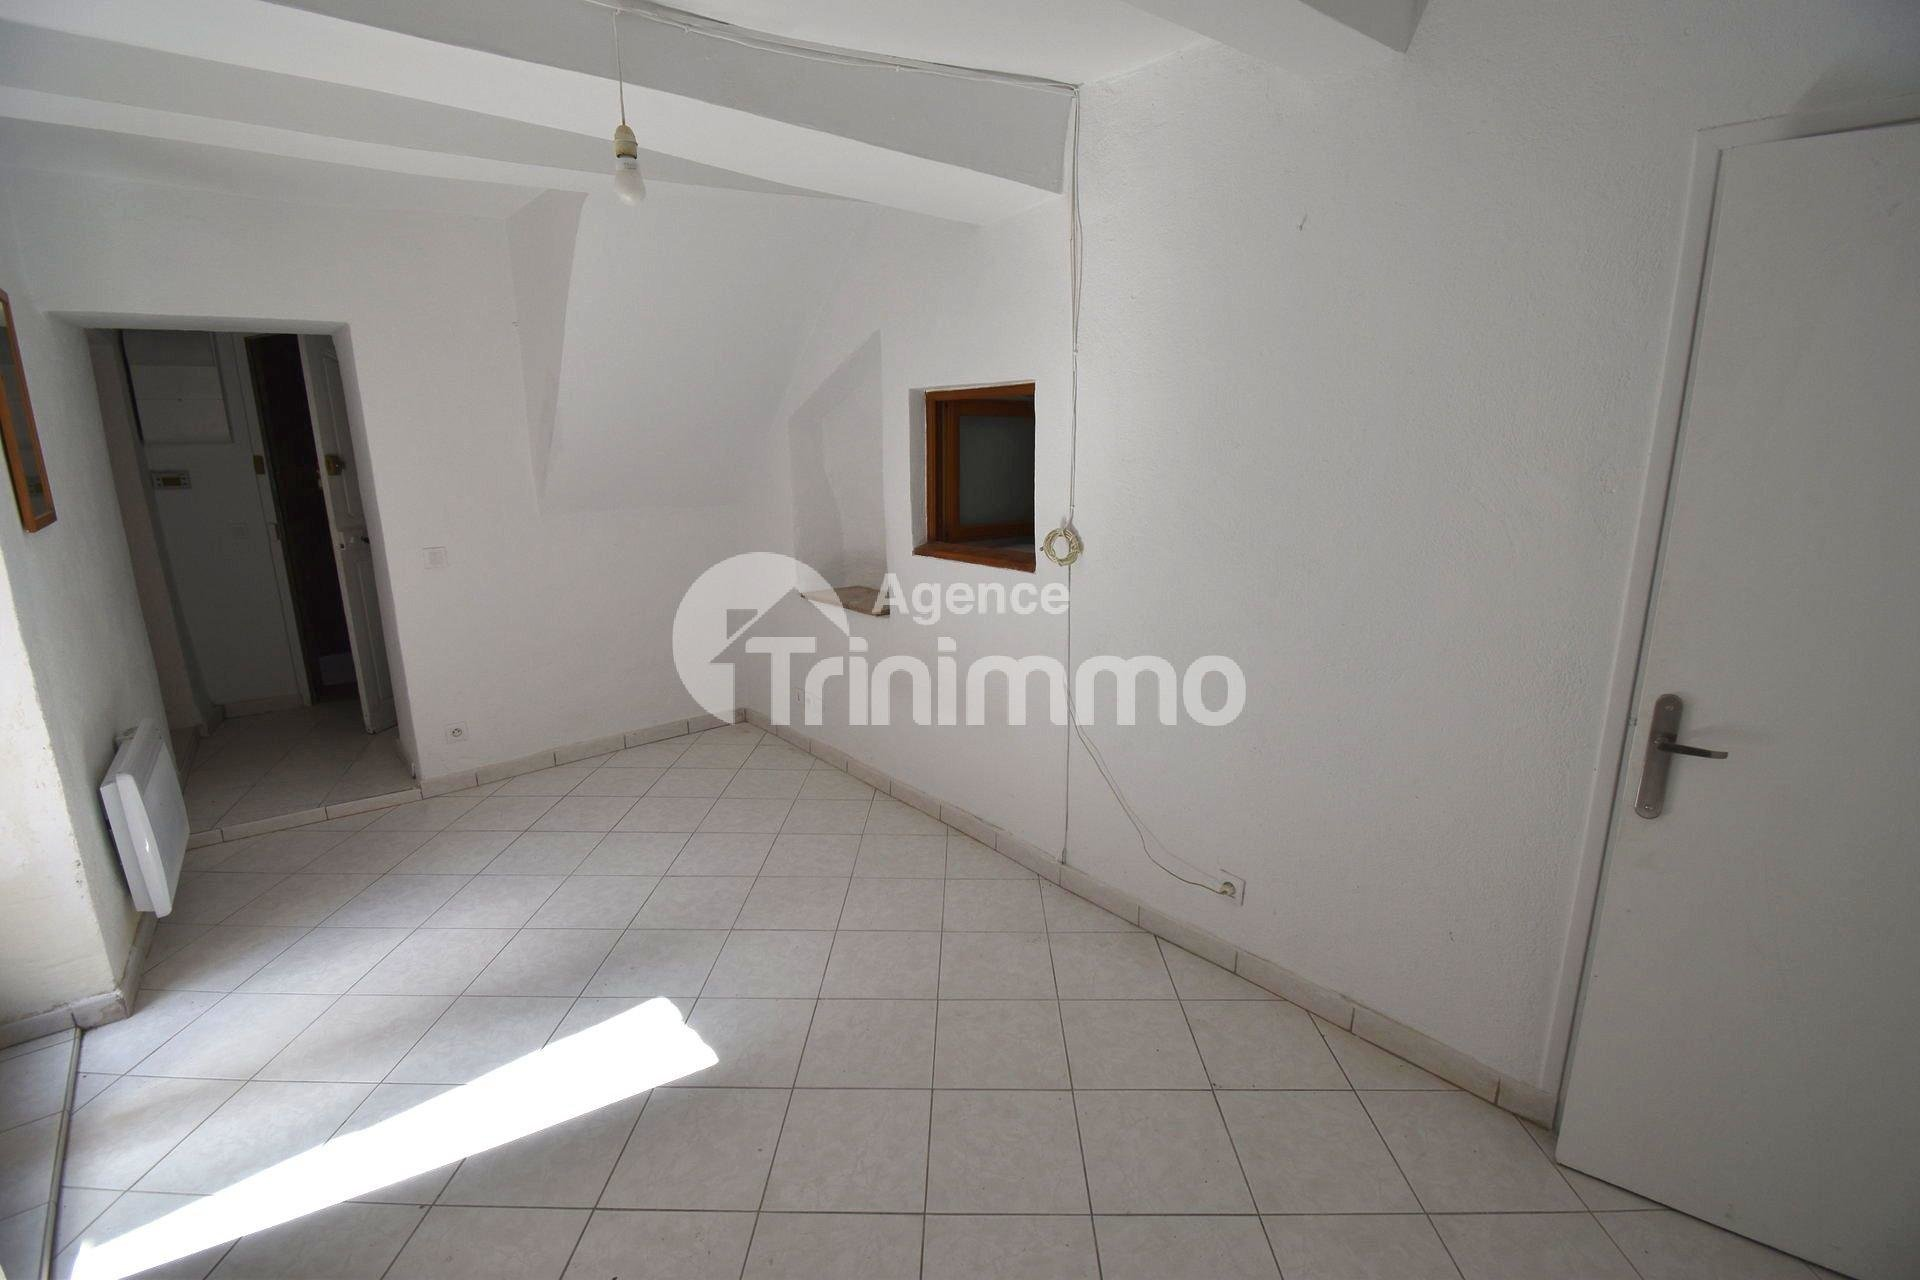 Sale Apartment - Peille